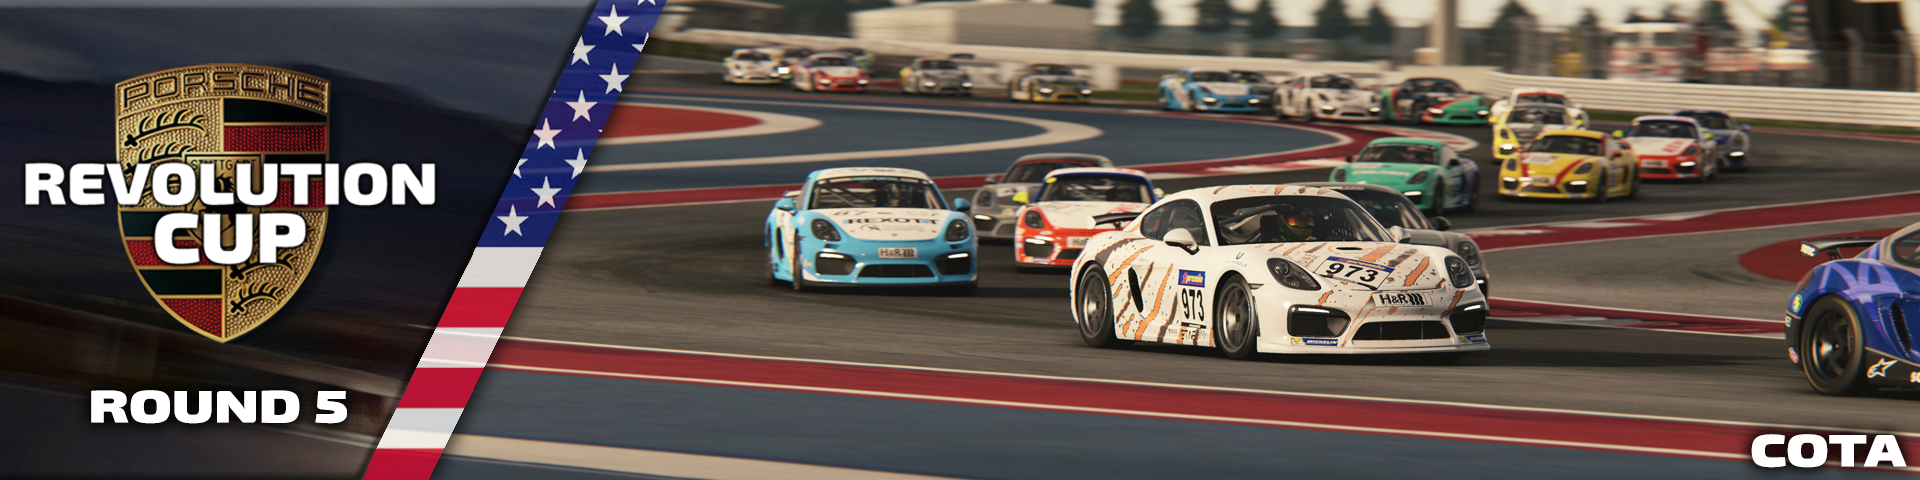 Round 5 - COTA Banner.png